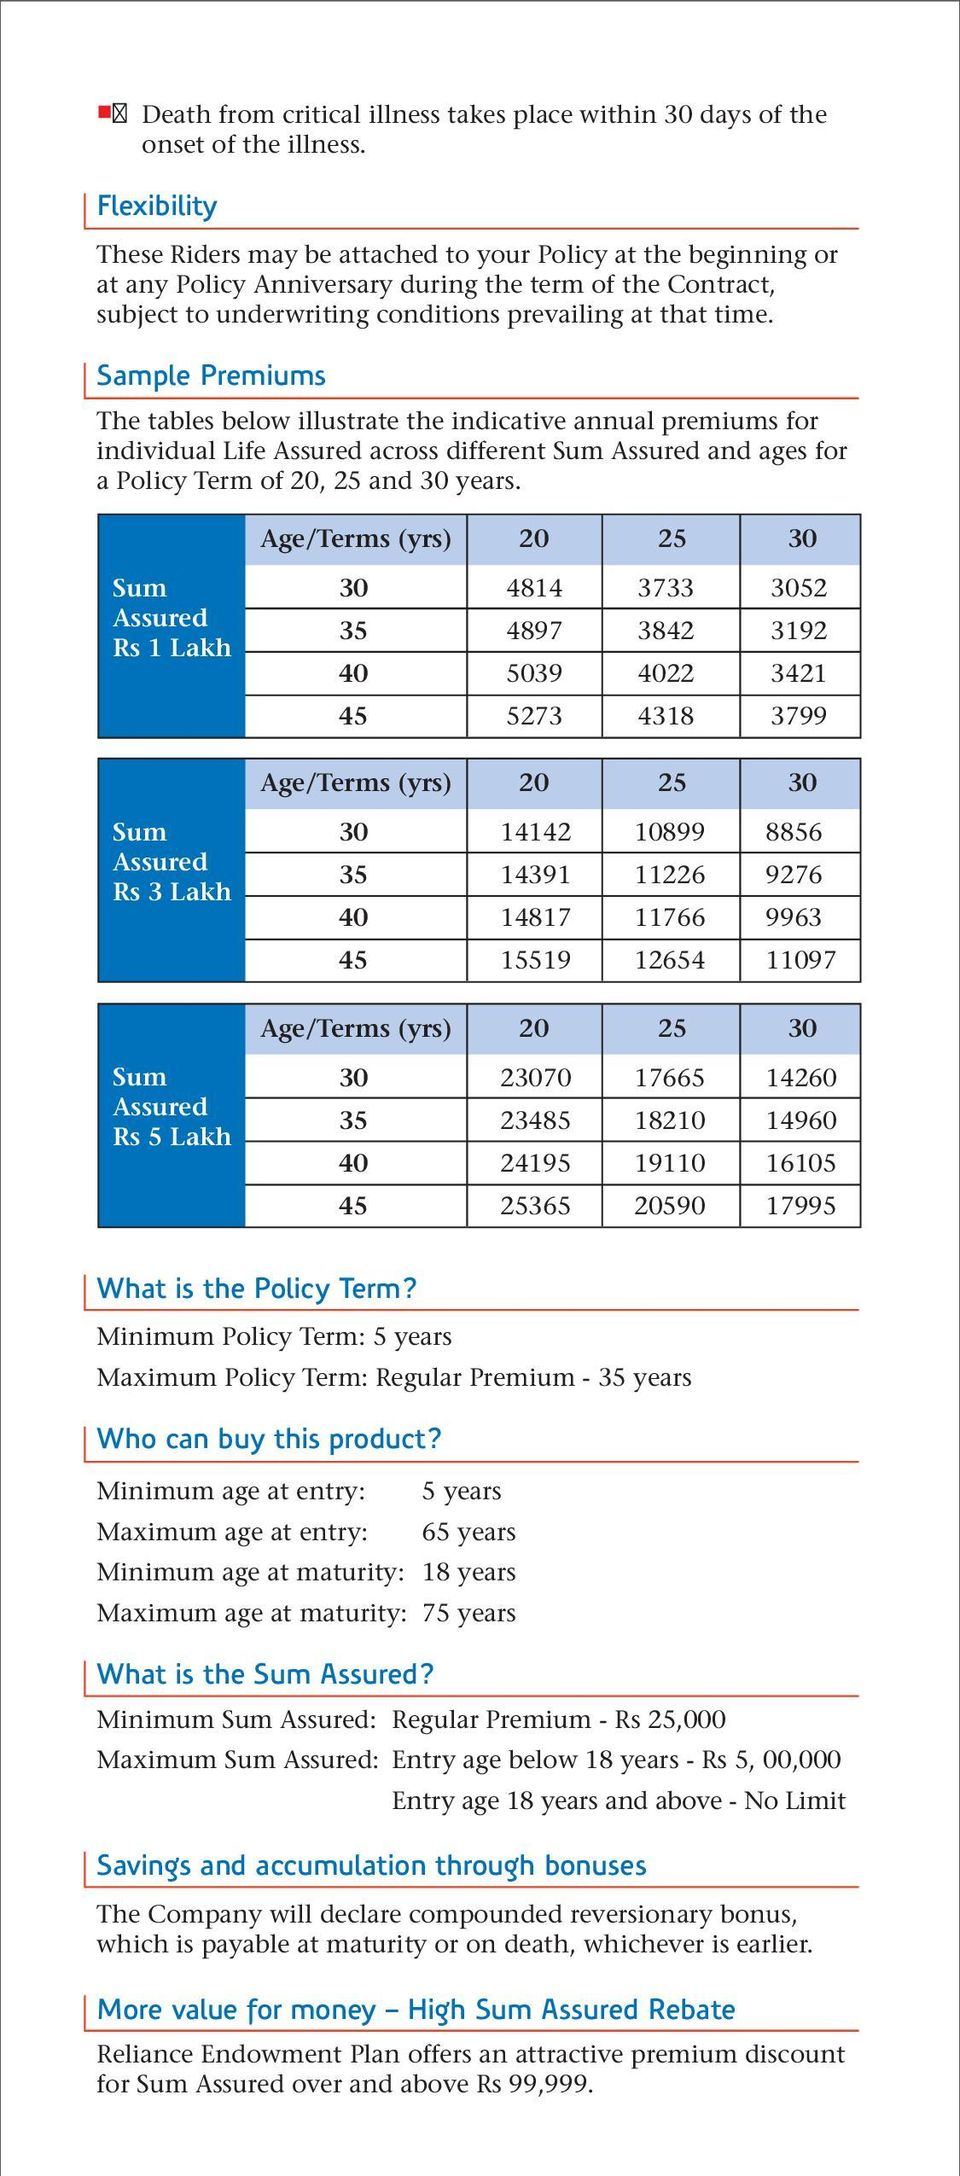 Sample Premiums The tables below illustrate the indicative annual premiums for individual Life Assured across different Sum Assured and ages for a Policy Term of 20, 25 and 30 years.